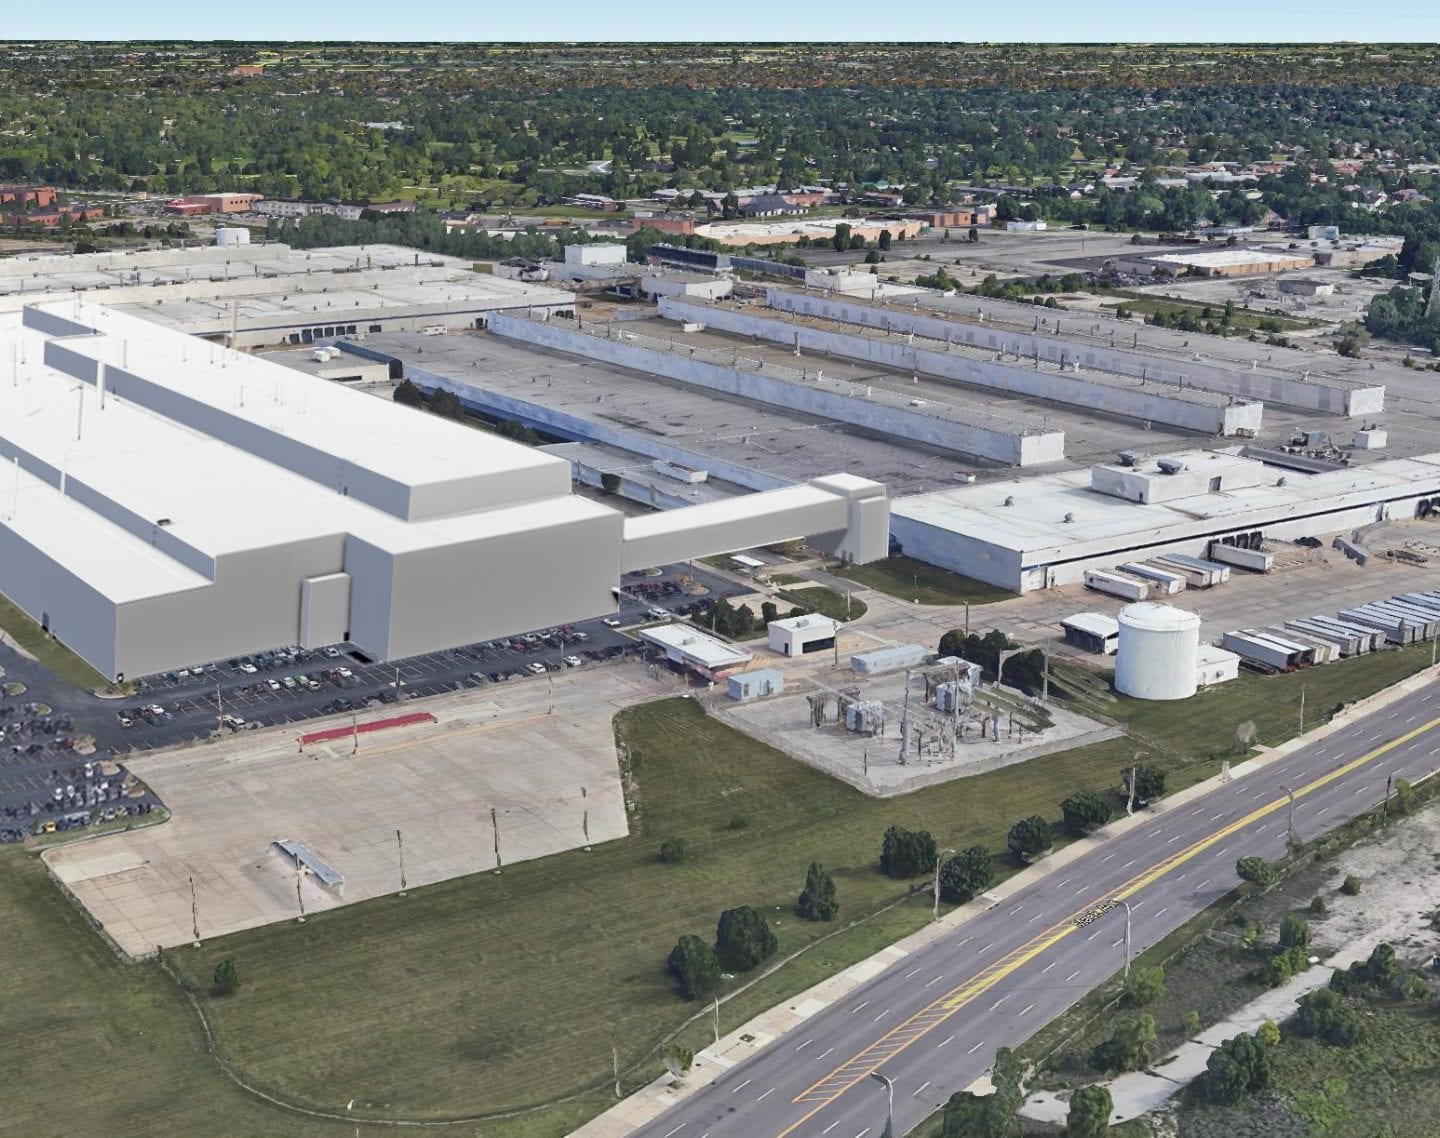 FCA Expanding Production of Jeep, Ram Brands With New Michigan Facility Upgrades